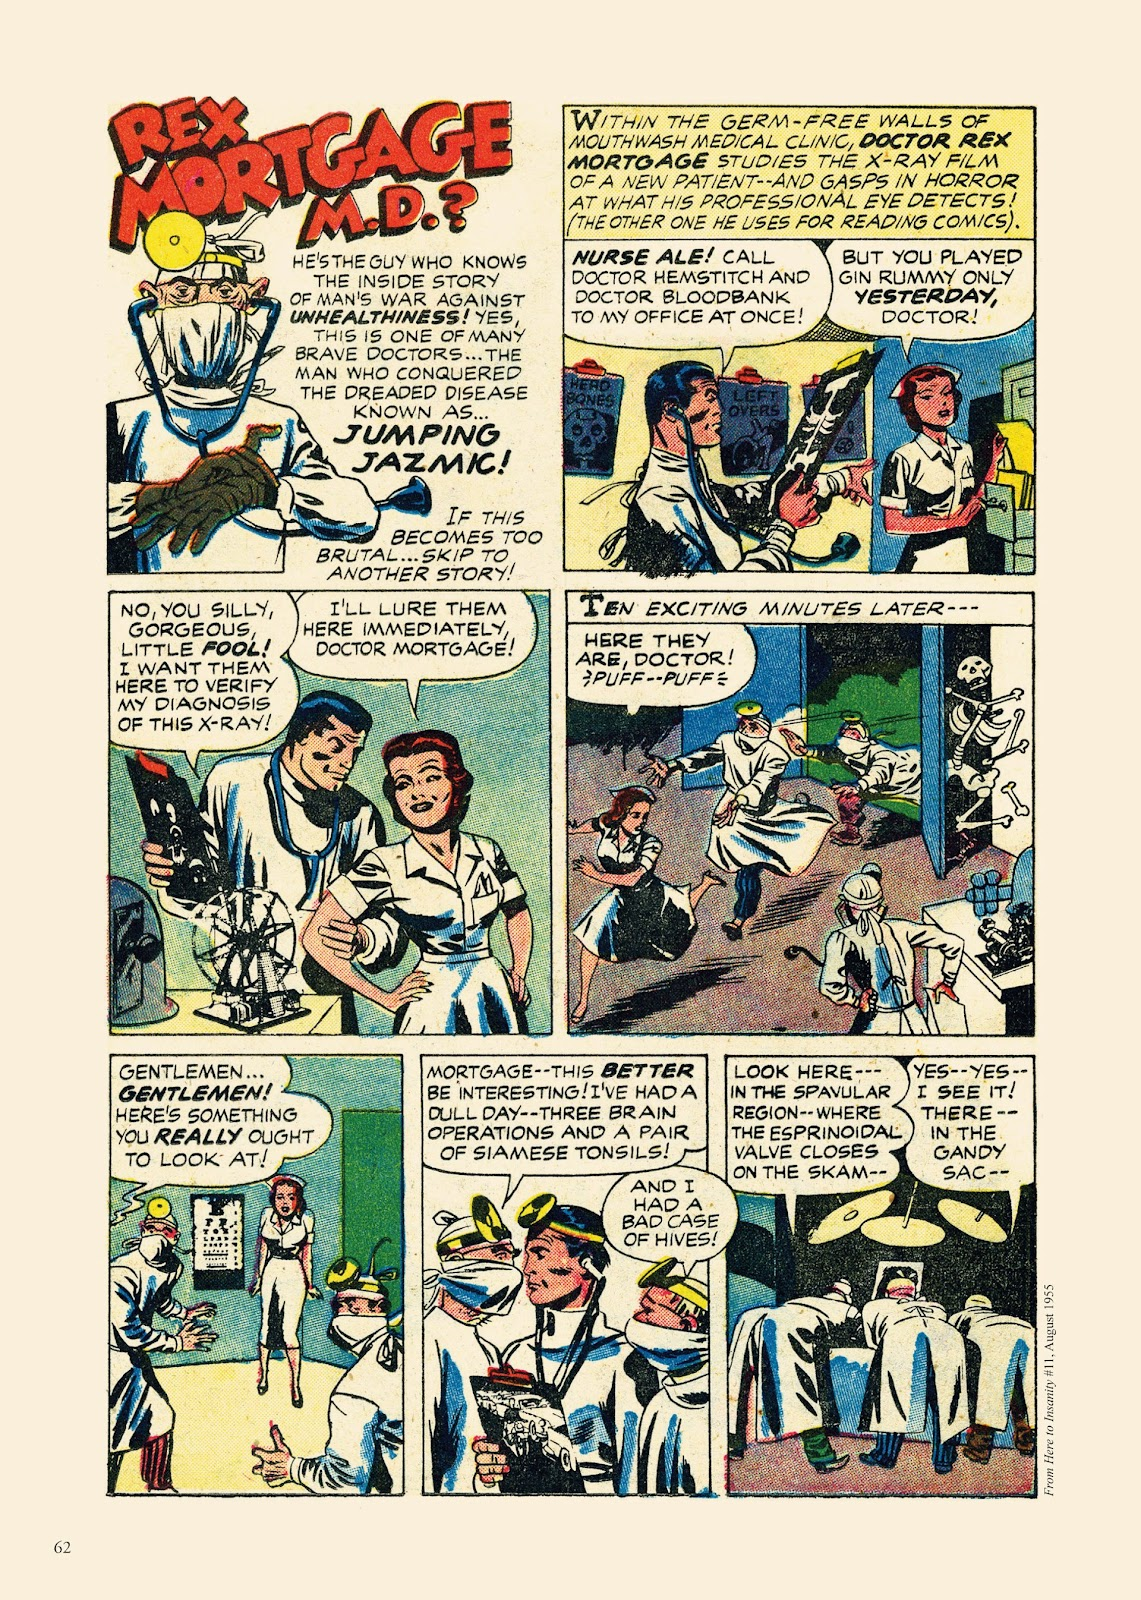 Read online Sincerest Form of Parody: The Best 1950s MAD-Inspired Satirical Comics comic -  Issue # TPB (Part 1) - 63